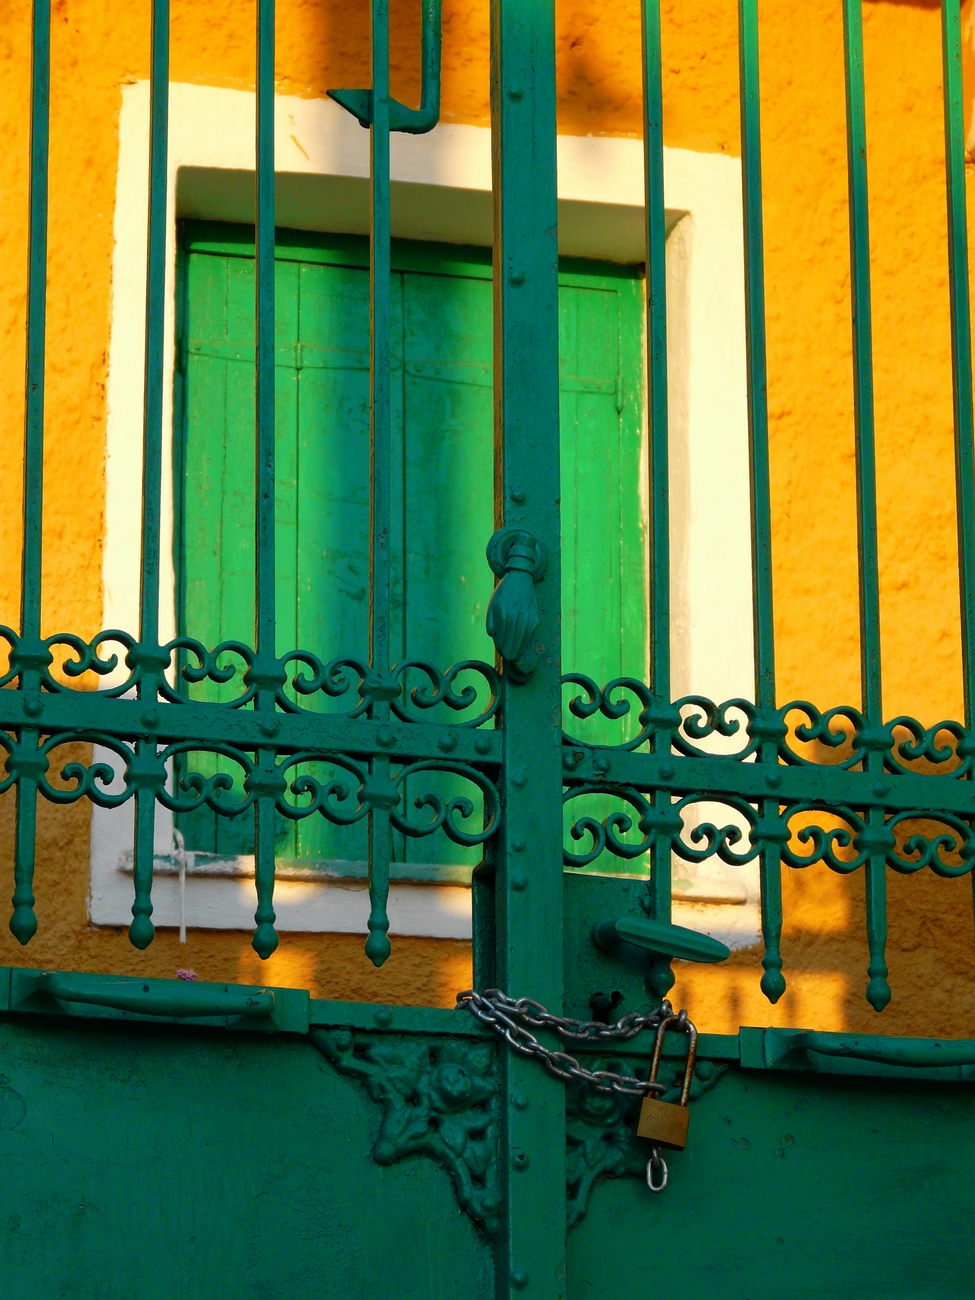 Green gate, yellow wall, Poros town